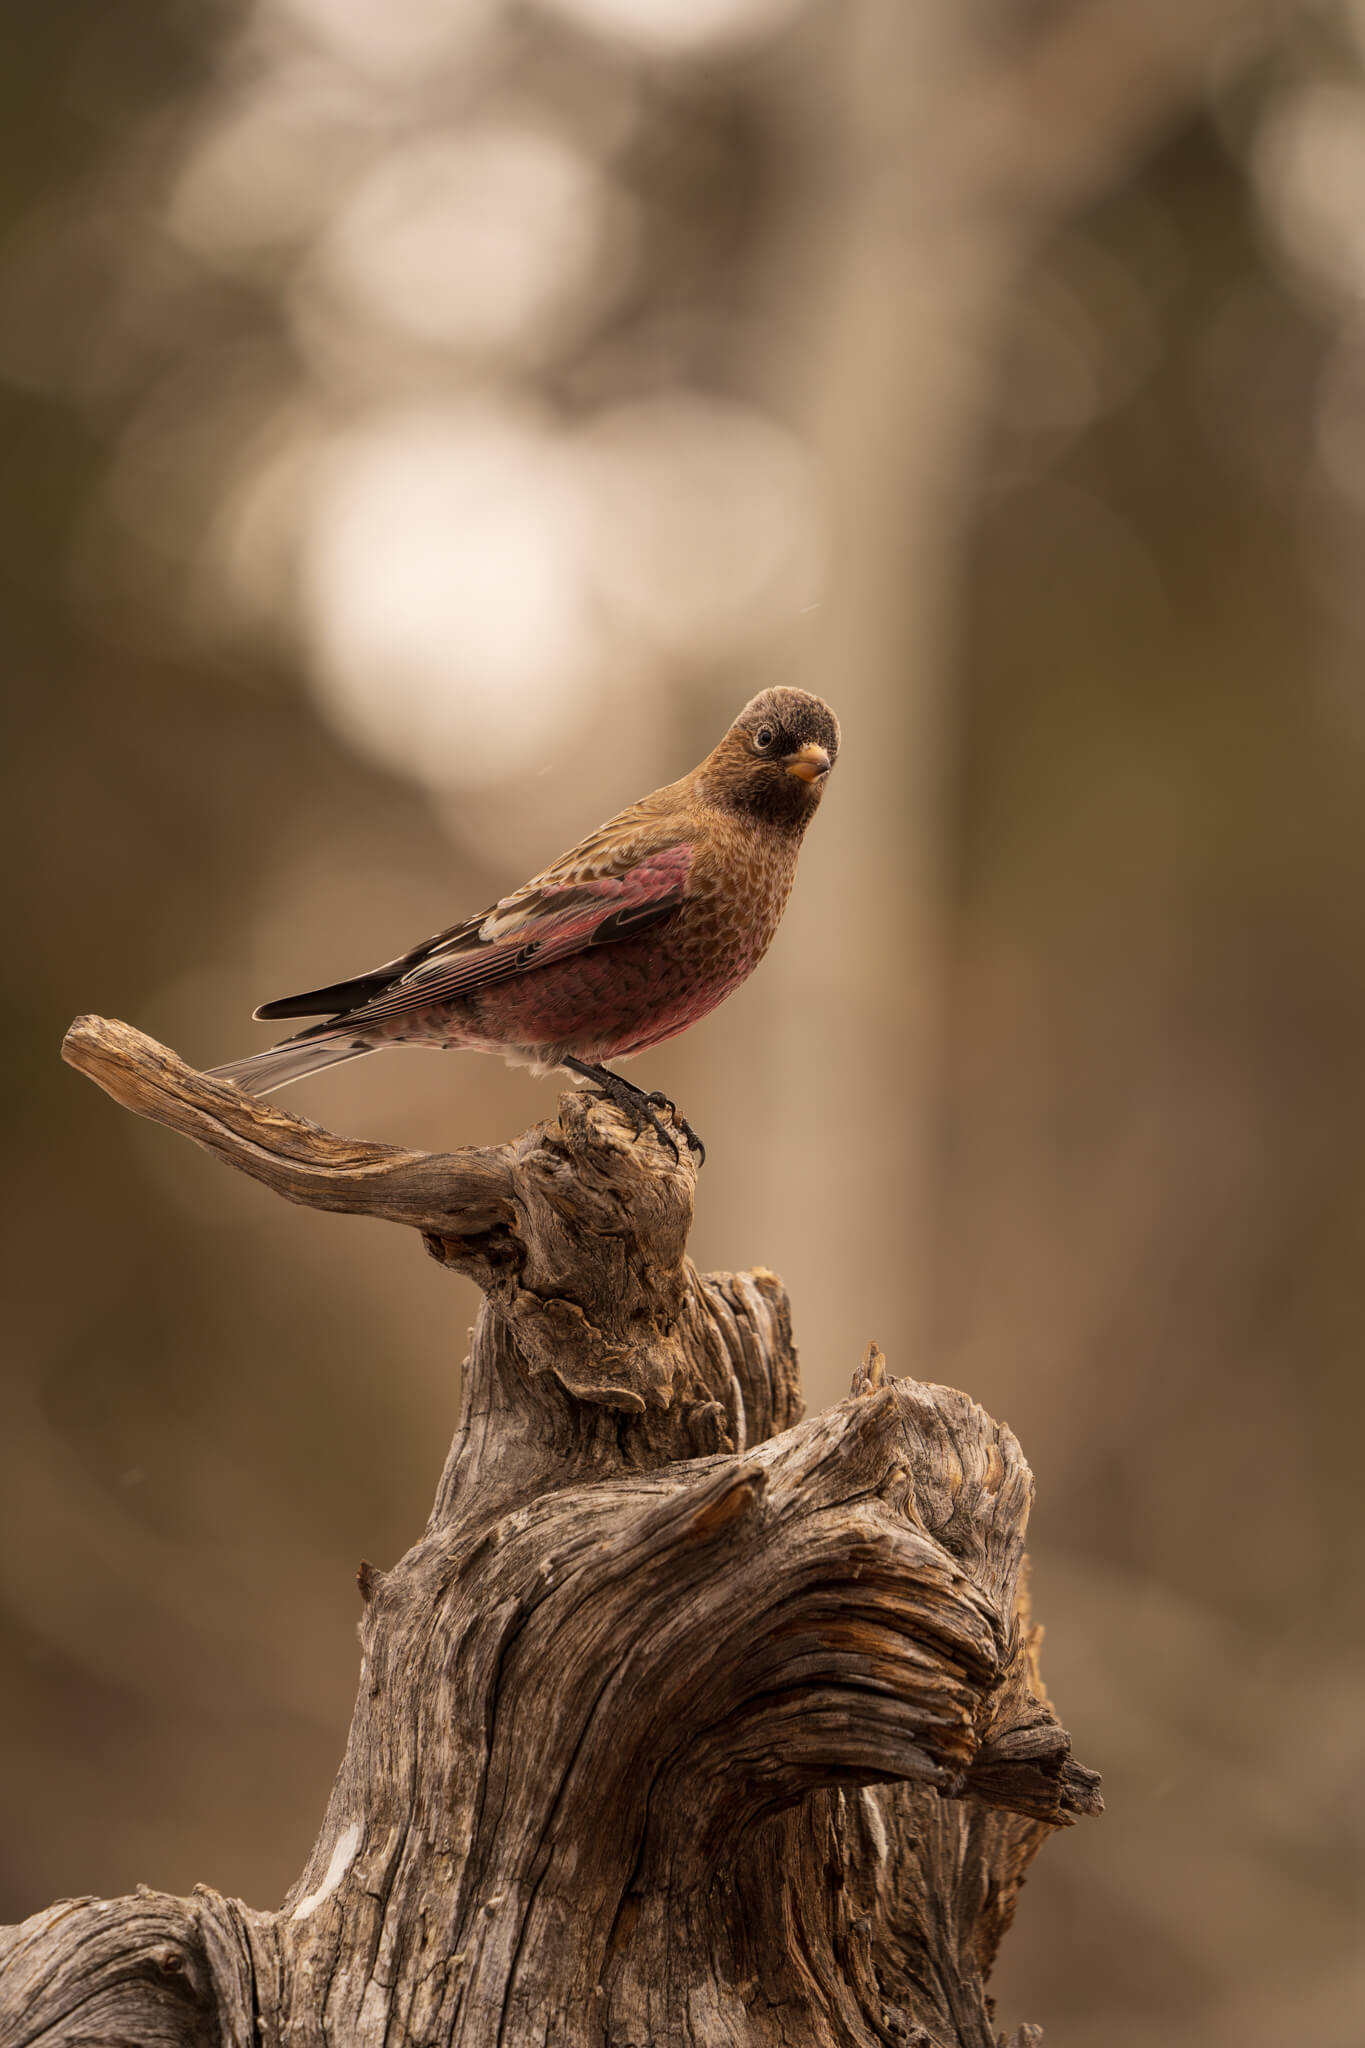 Brown-capped rosy-finch, Tarryall, CO, January 10, 2021 - Ryder